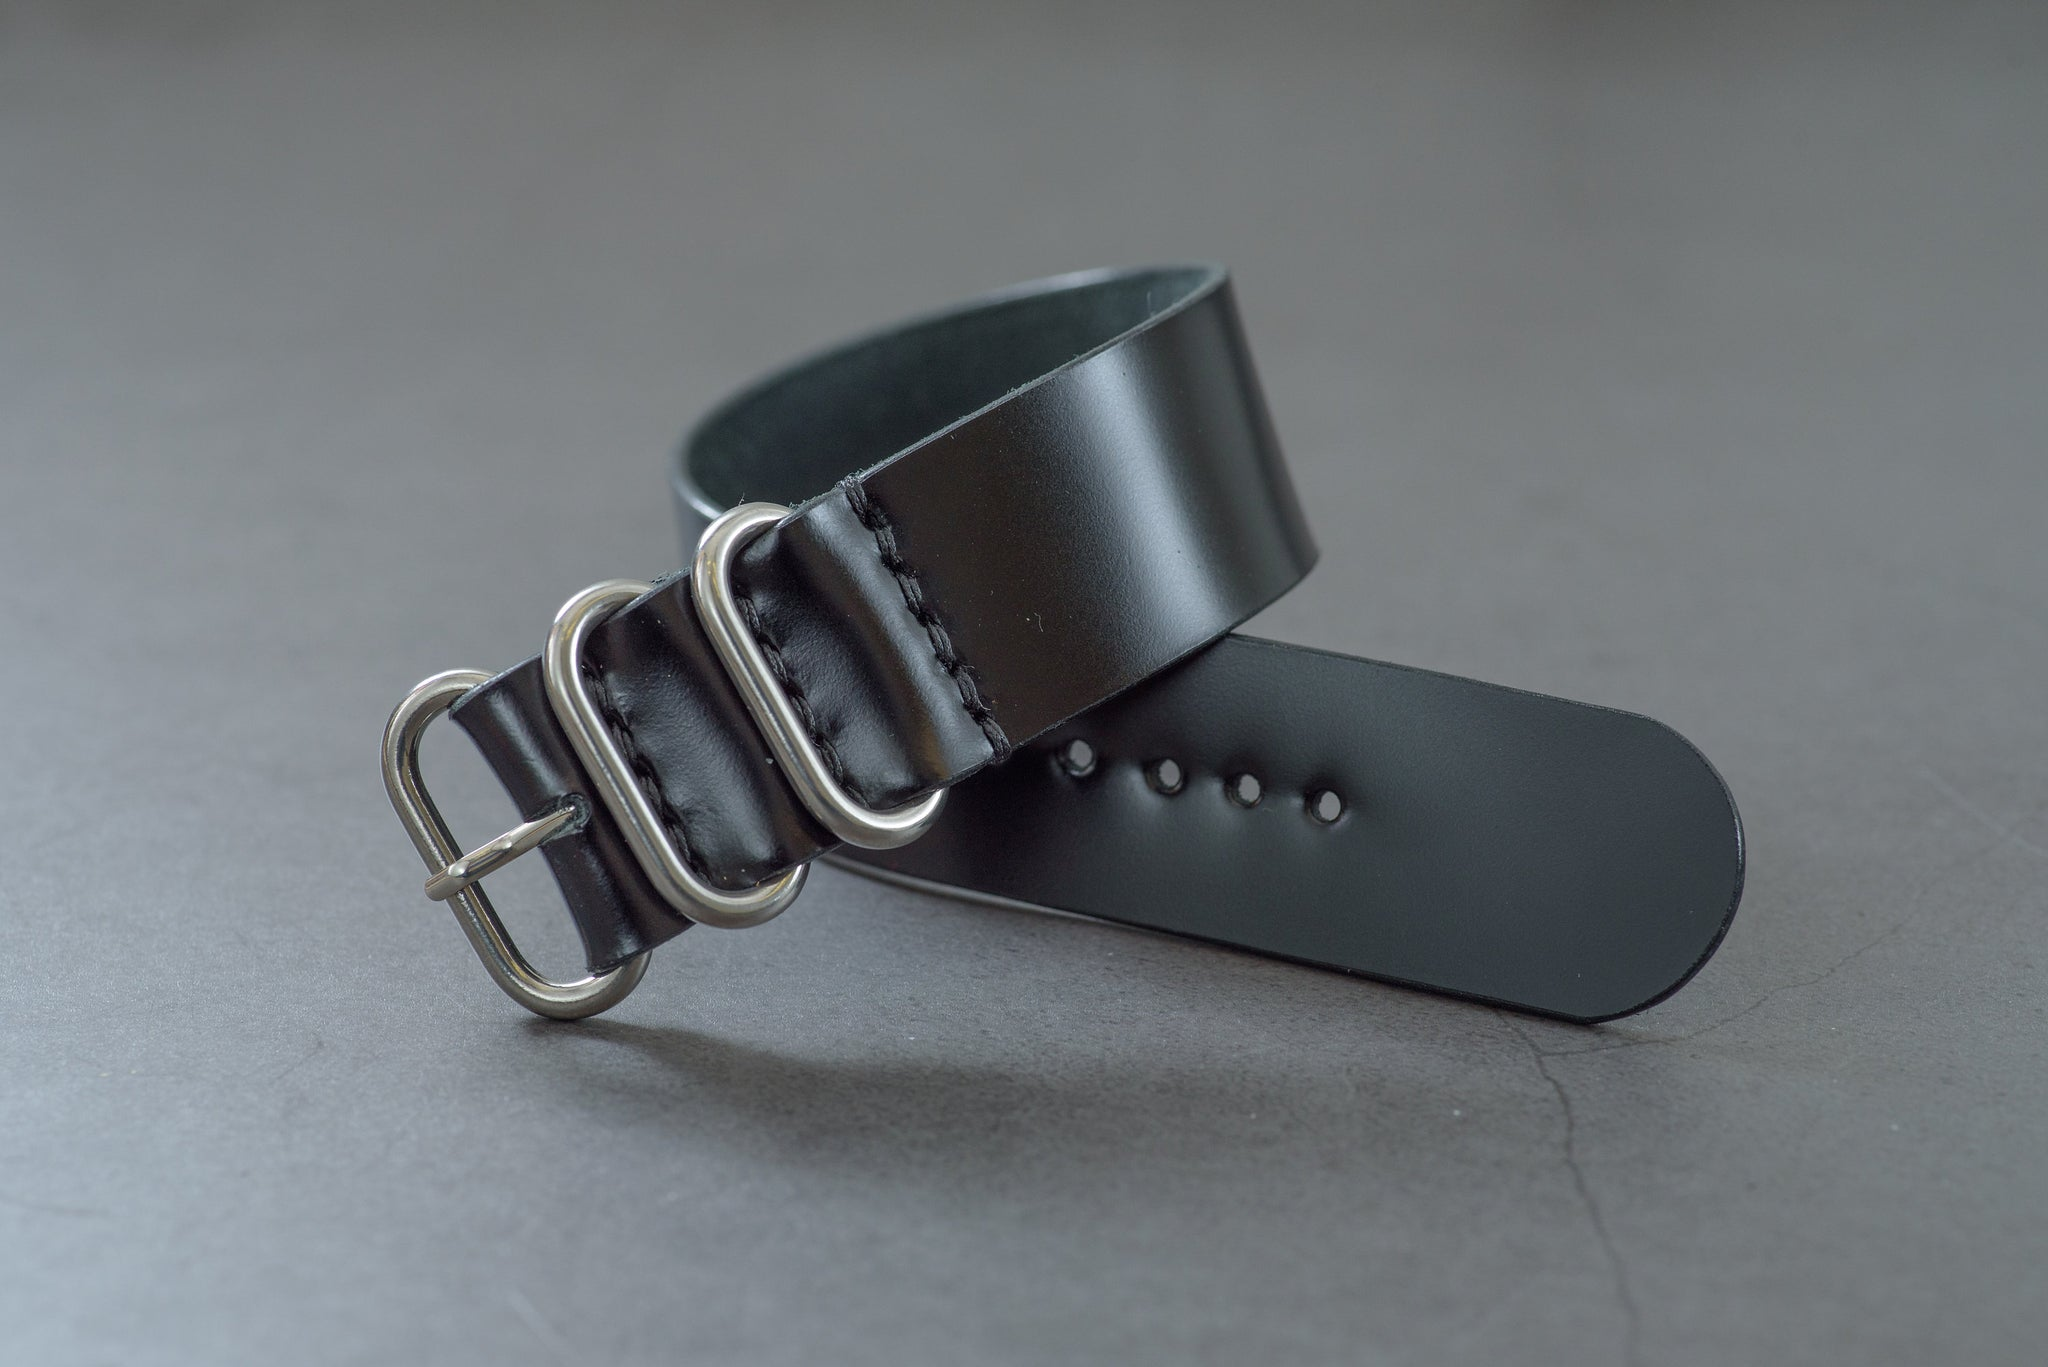 7 COLORS - Black Shell Cordovan Leather Single Pass ZULU Strap